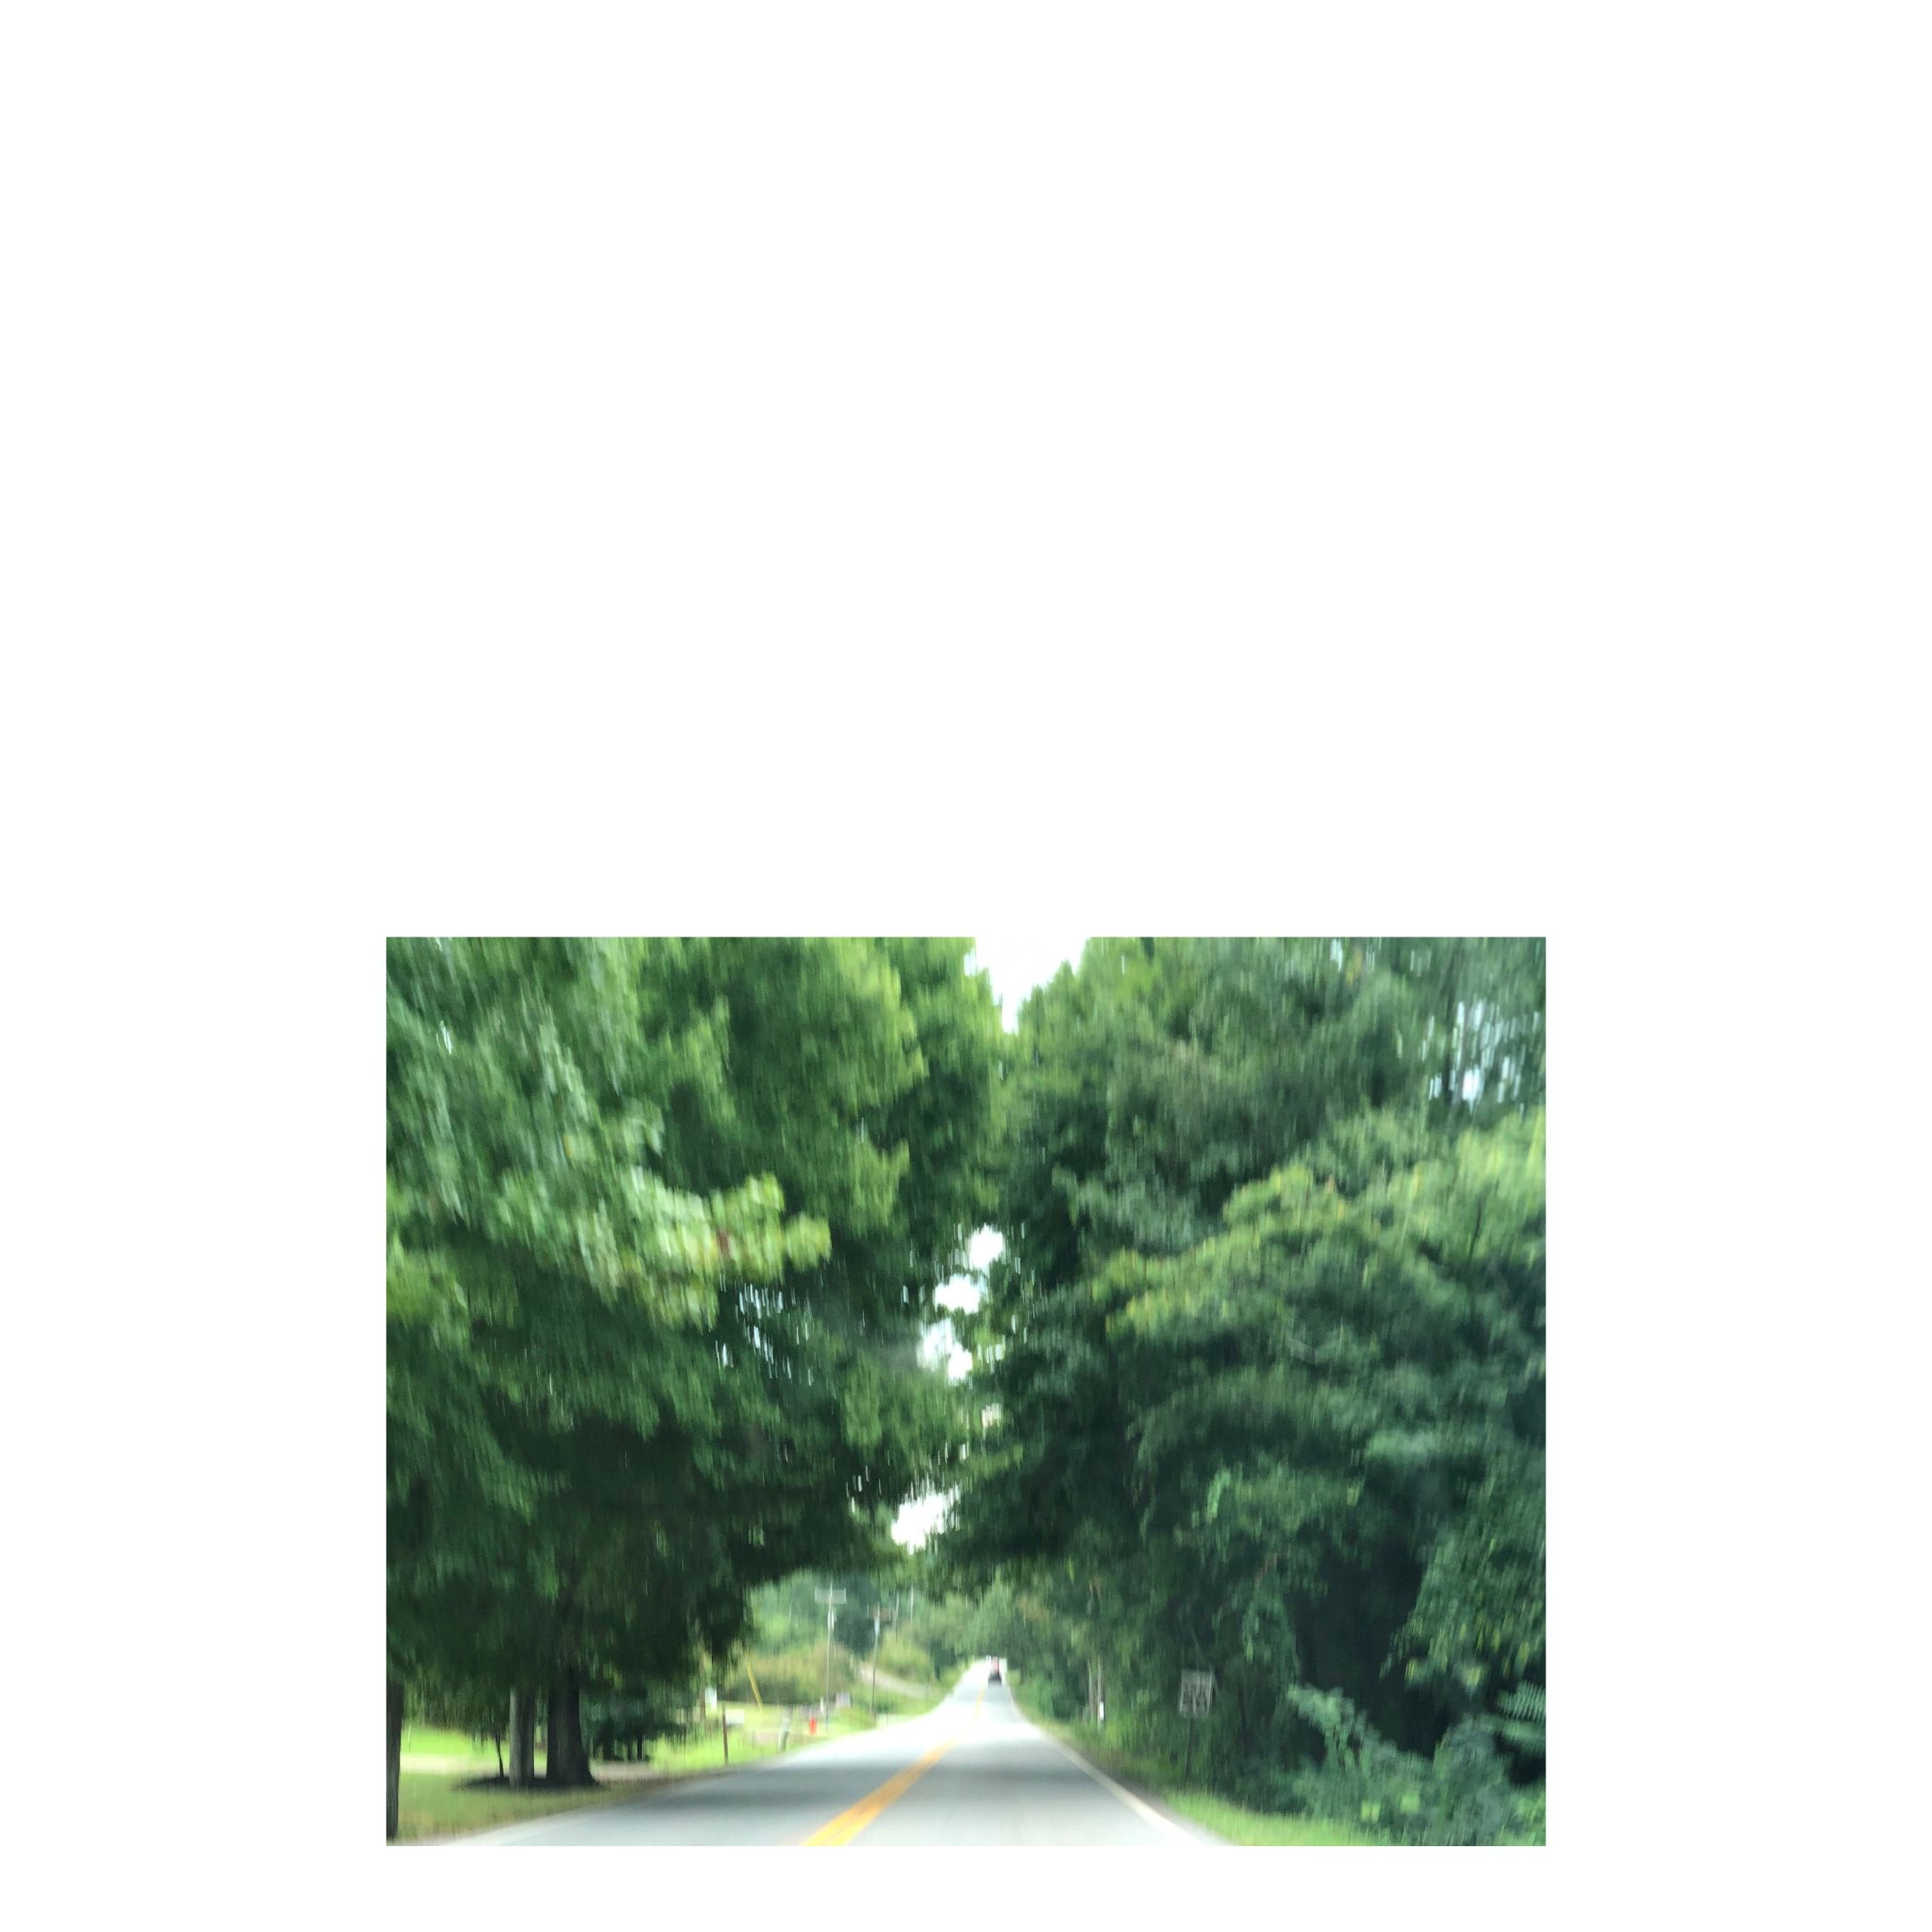 blurry shot of road through trees